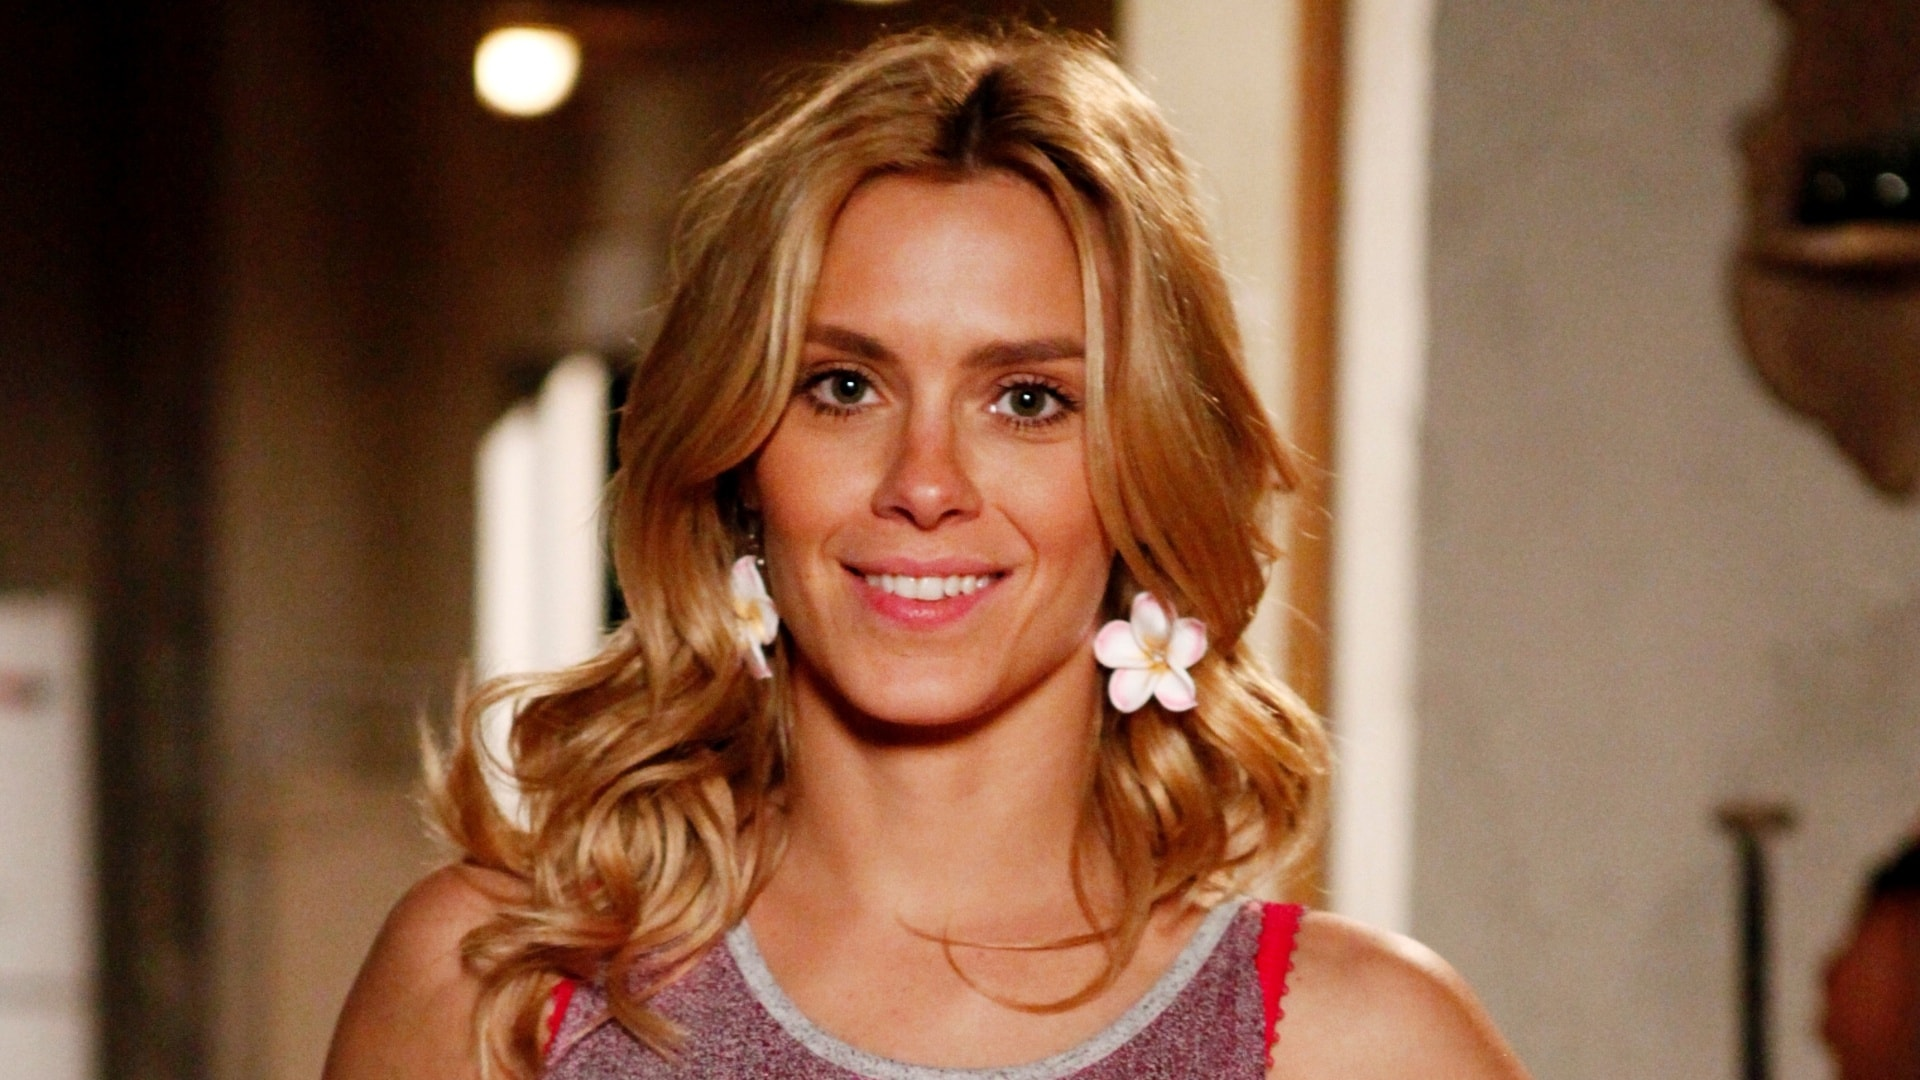 Carolina Dieckmann Wallpapers